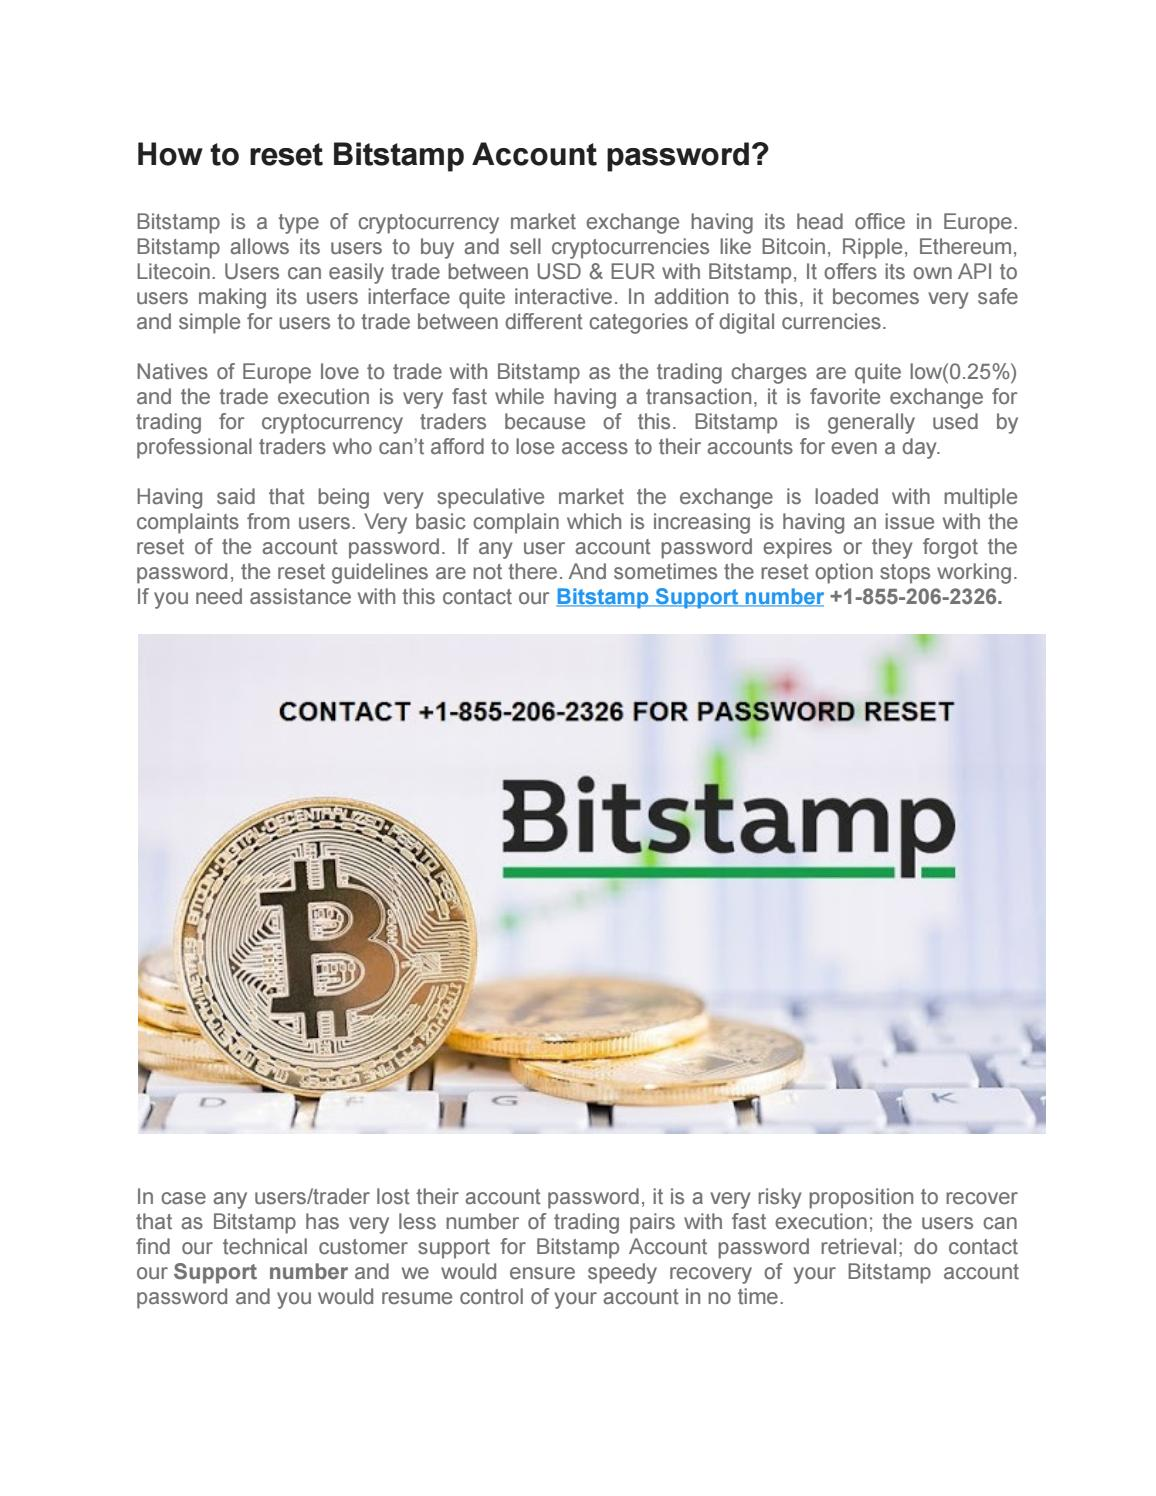 contact bitstamp support number +1-855-206-2326 for technical